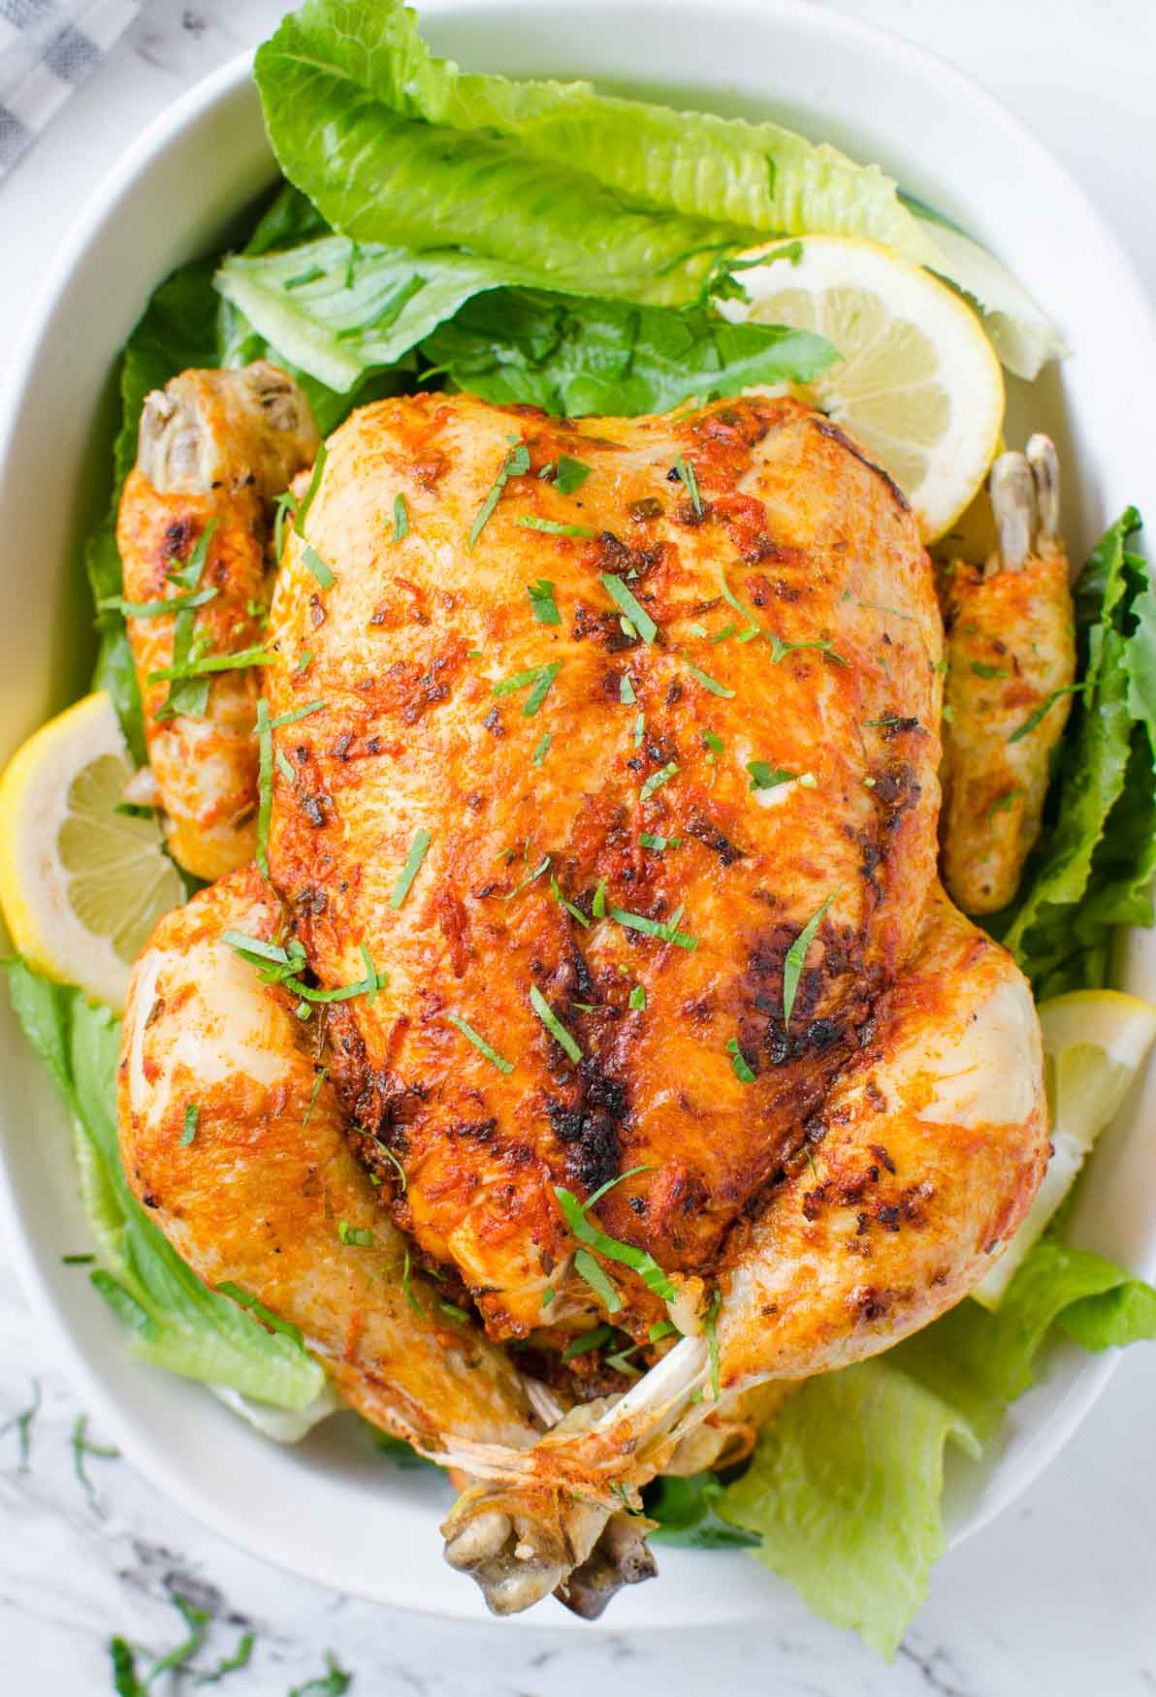 Simple Healthy Recipes From Two PhDs - chicken recipes delicious